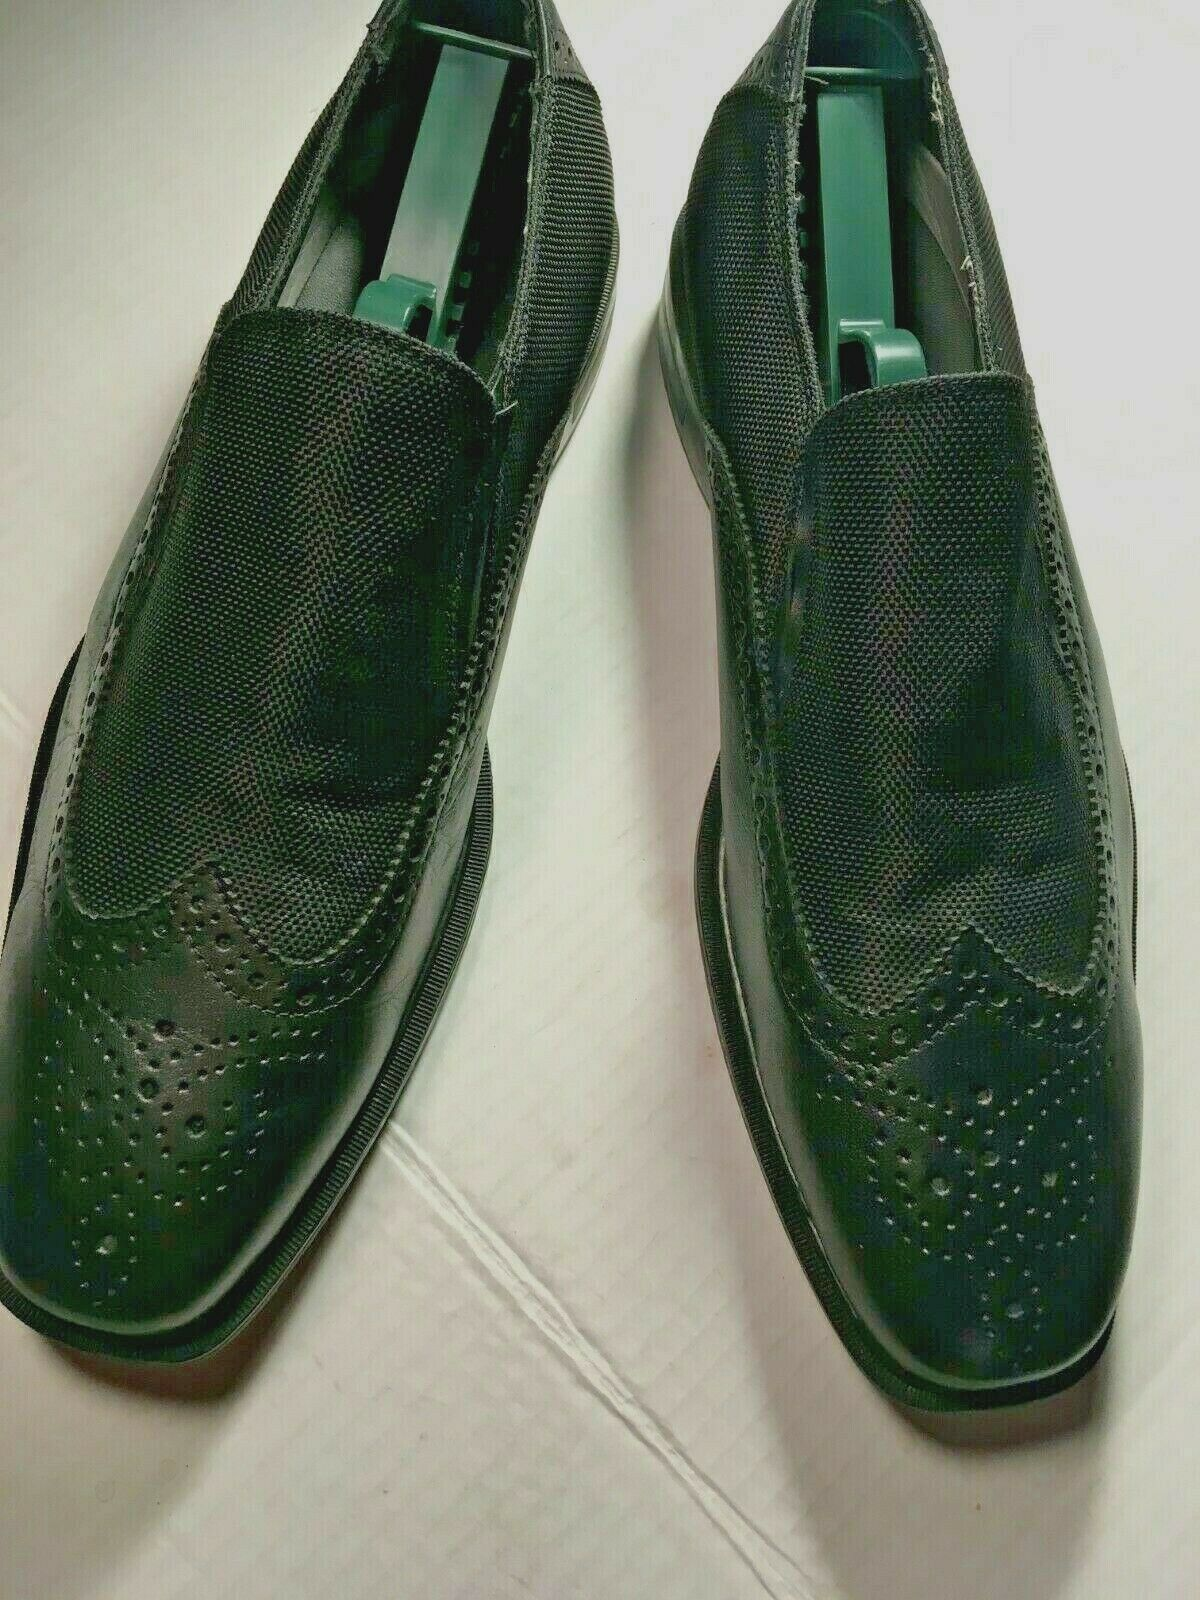 Men's New Black Loafers by Kenneth Cole Reaction size 9M Leather CasualorFormal